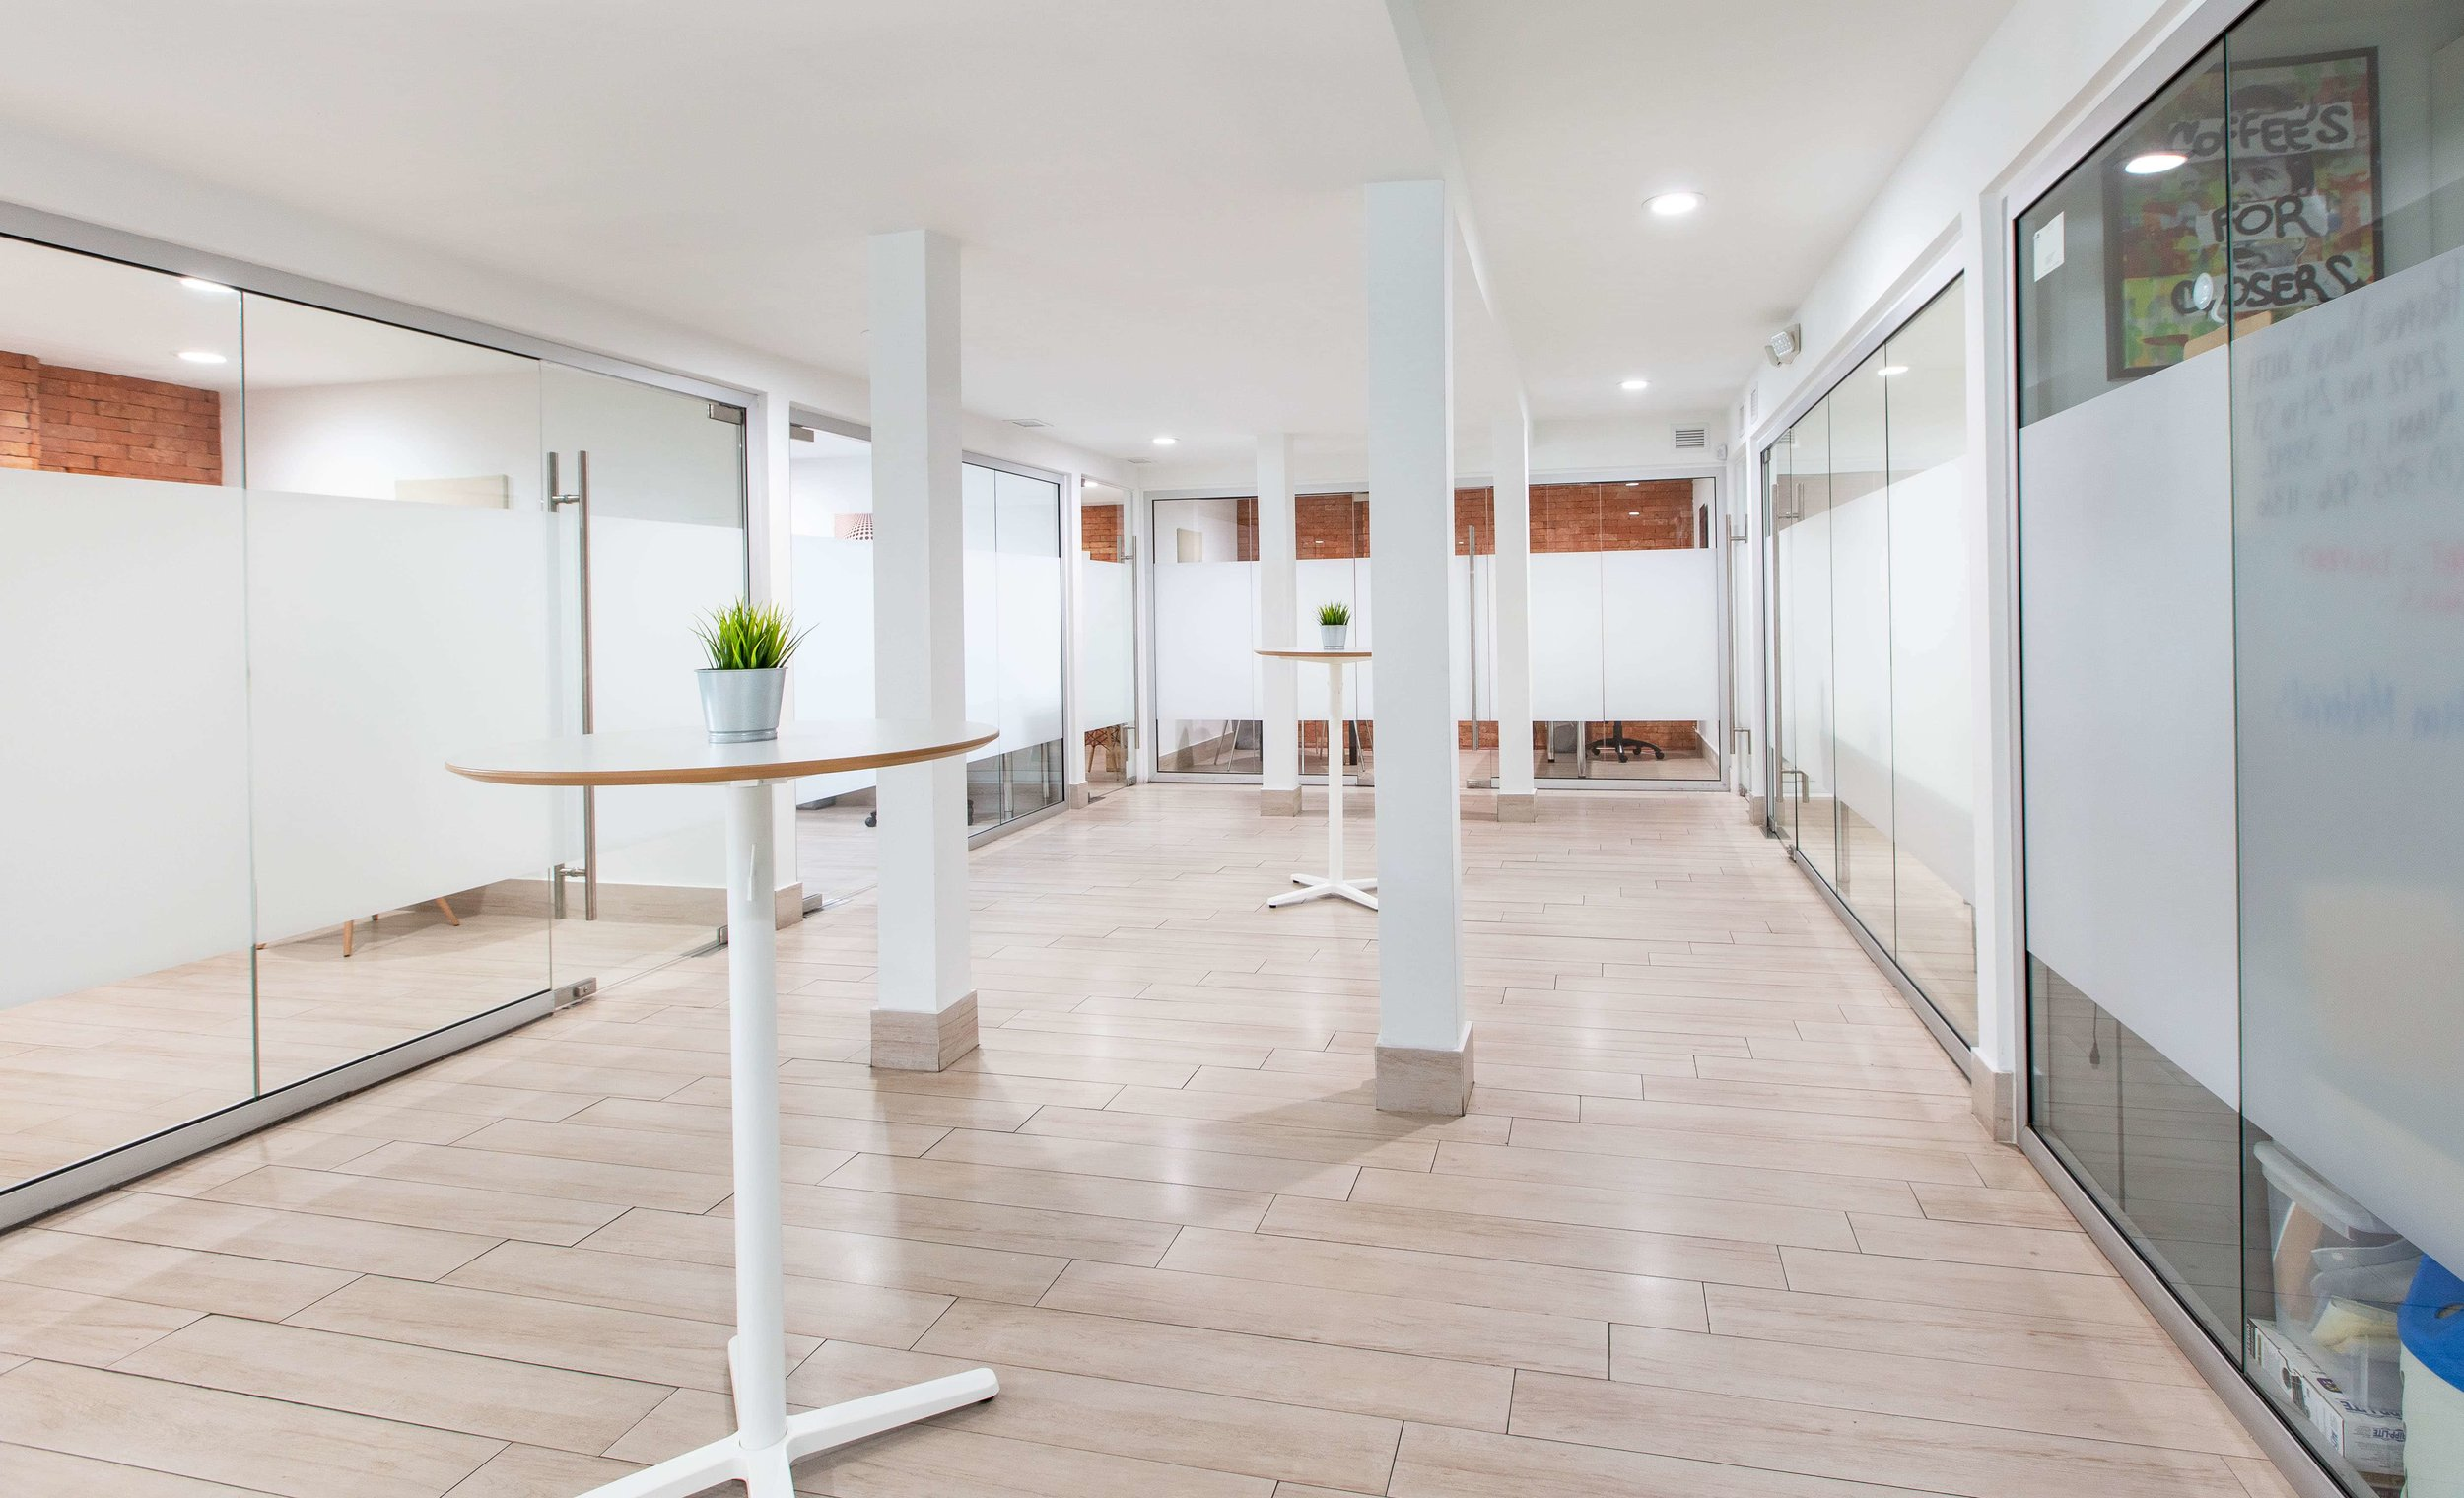 Stand-up meeting areas.Ideal when need to have a quick phone call.